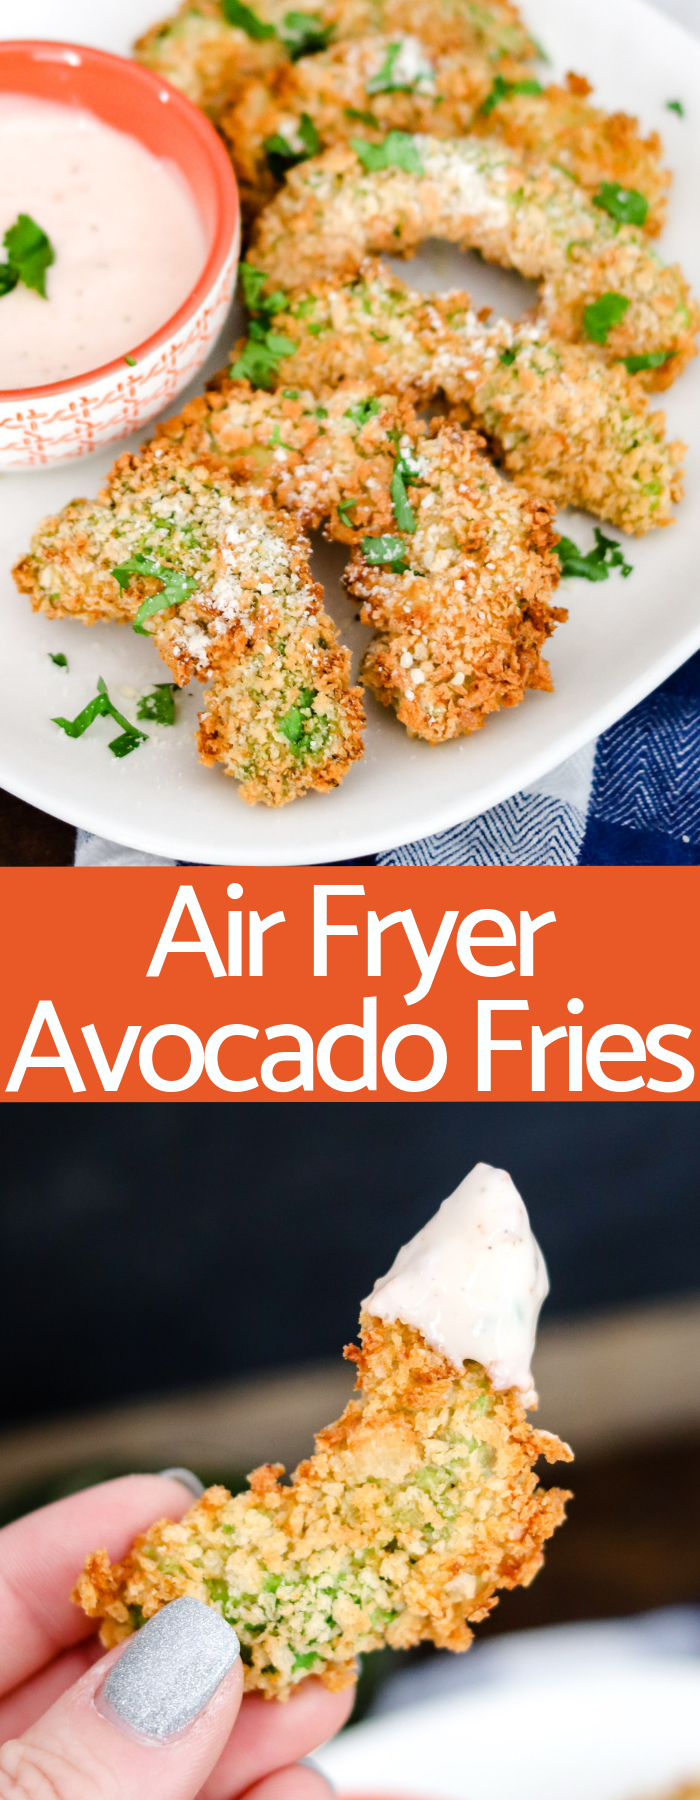 Air Fryer Avocado Fries are creamy and crunchy without any